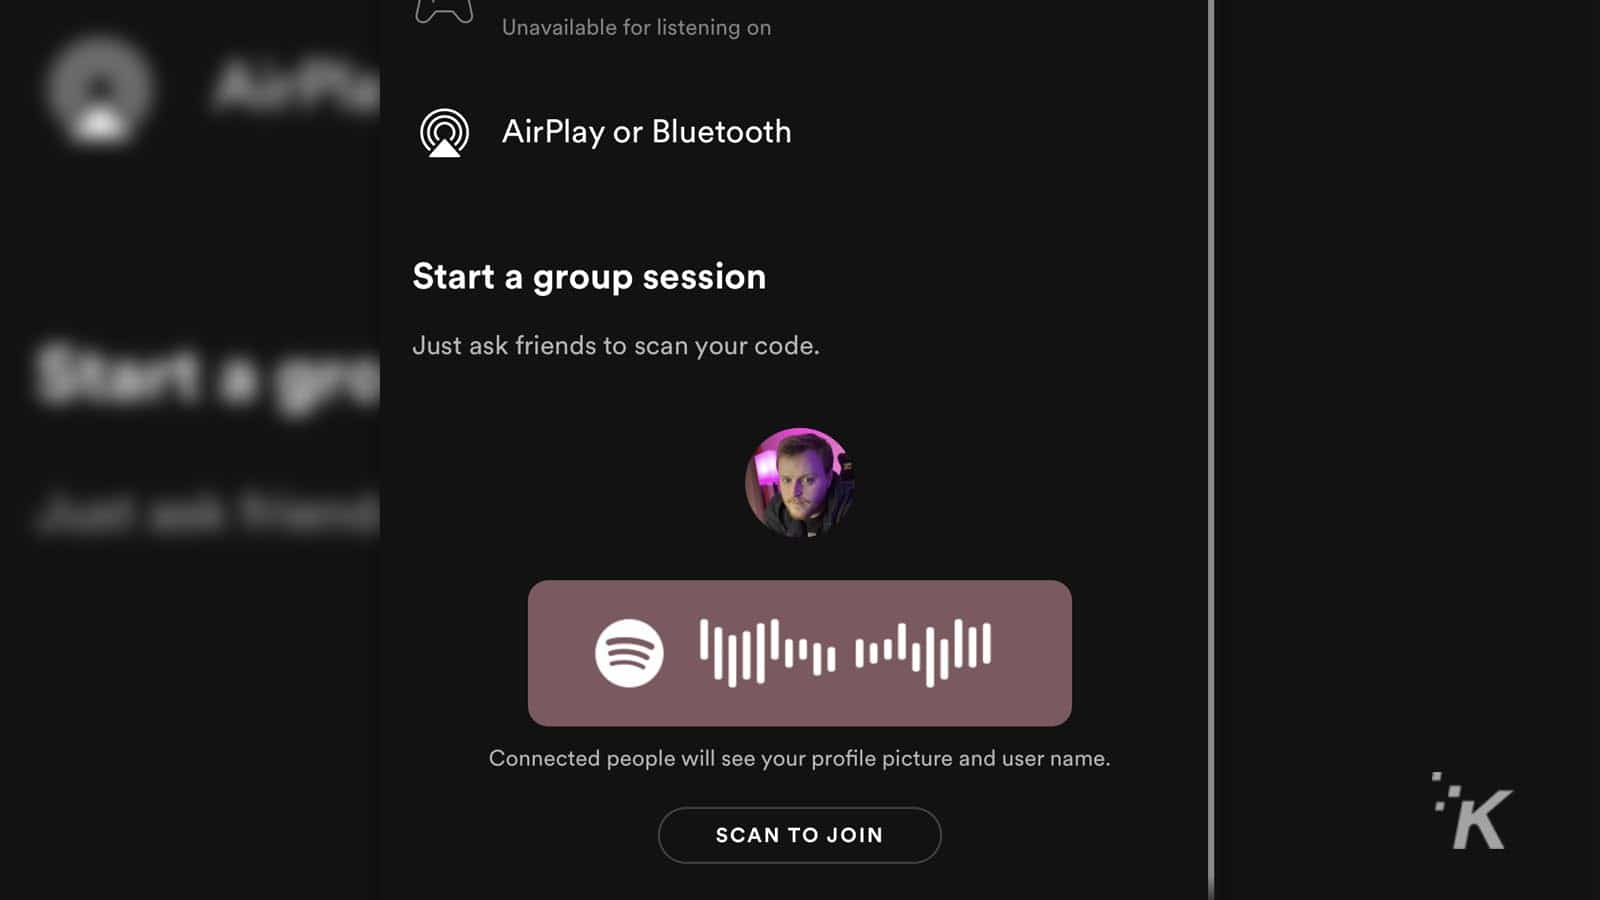 spotify group session how to